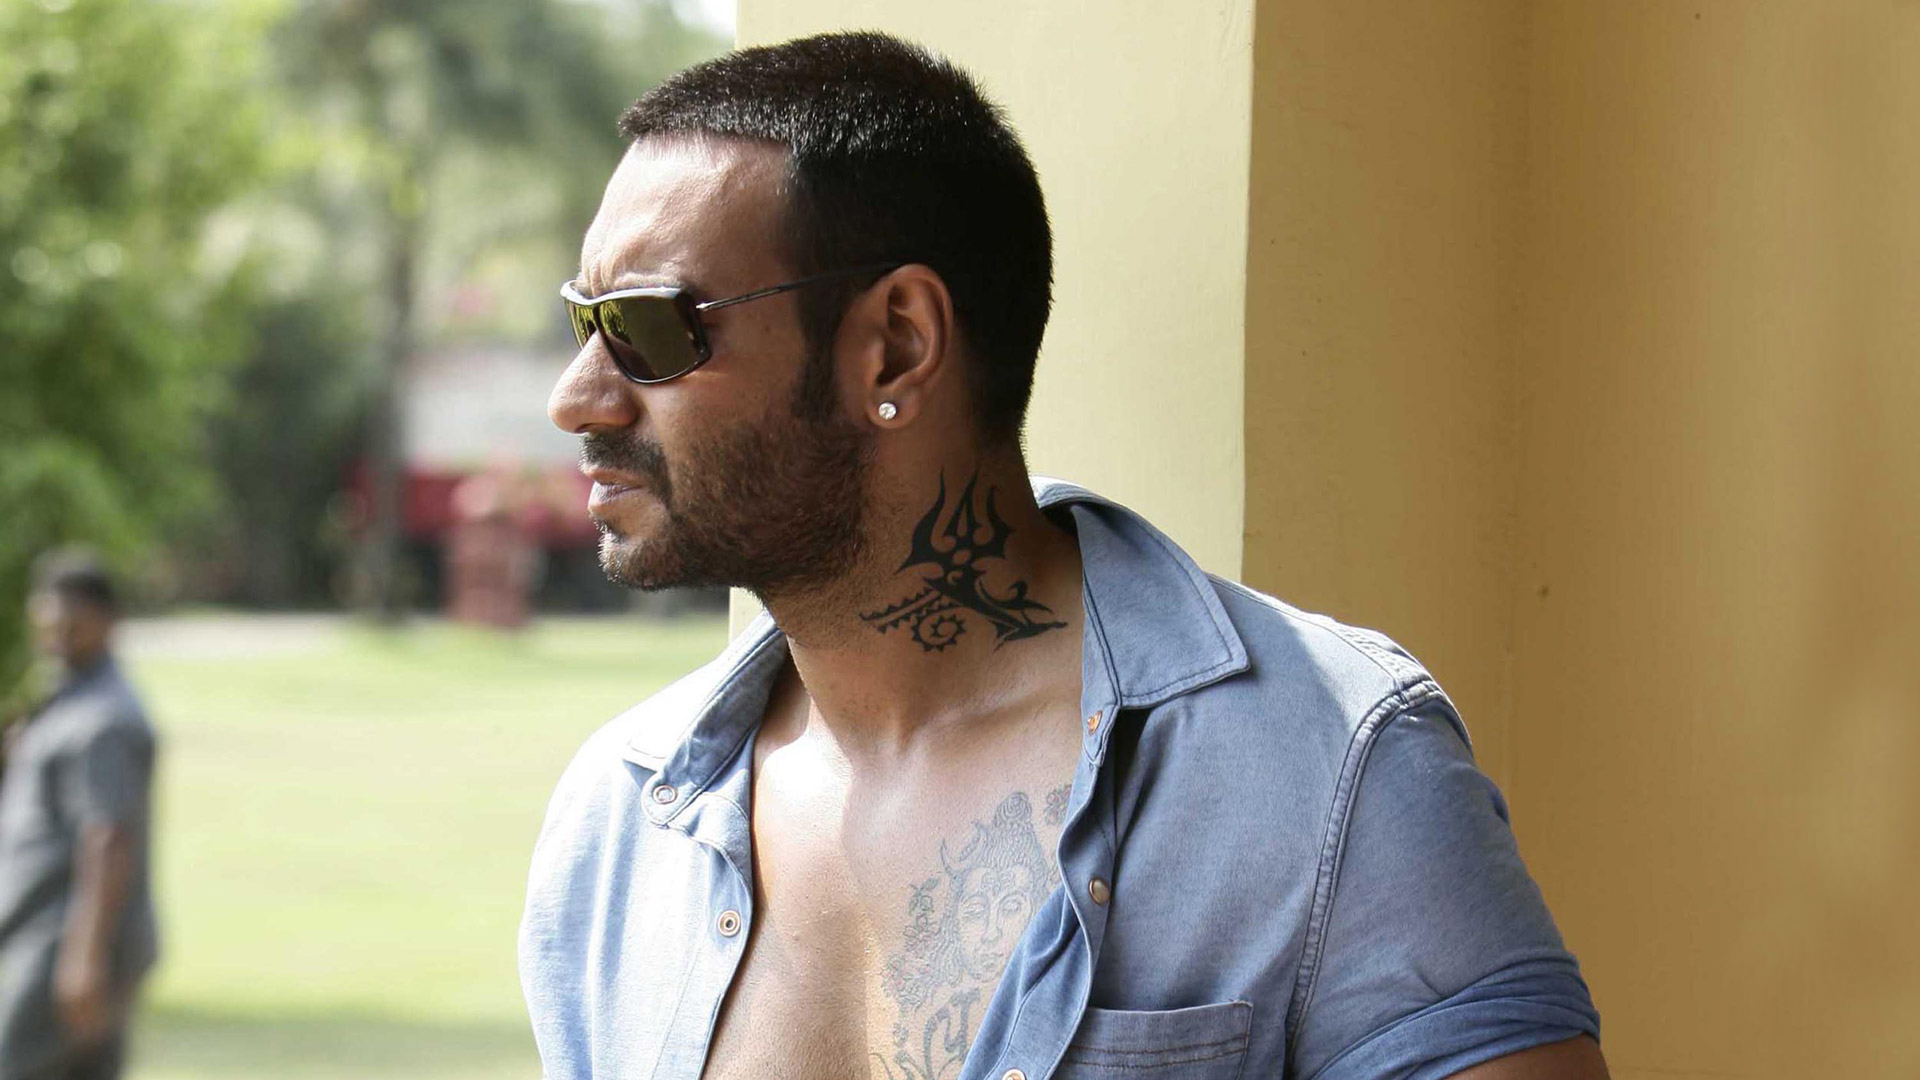 Ajay Devgan Tattoo Wallpapers Facebook Cover Popopicscom